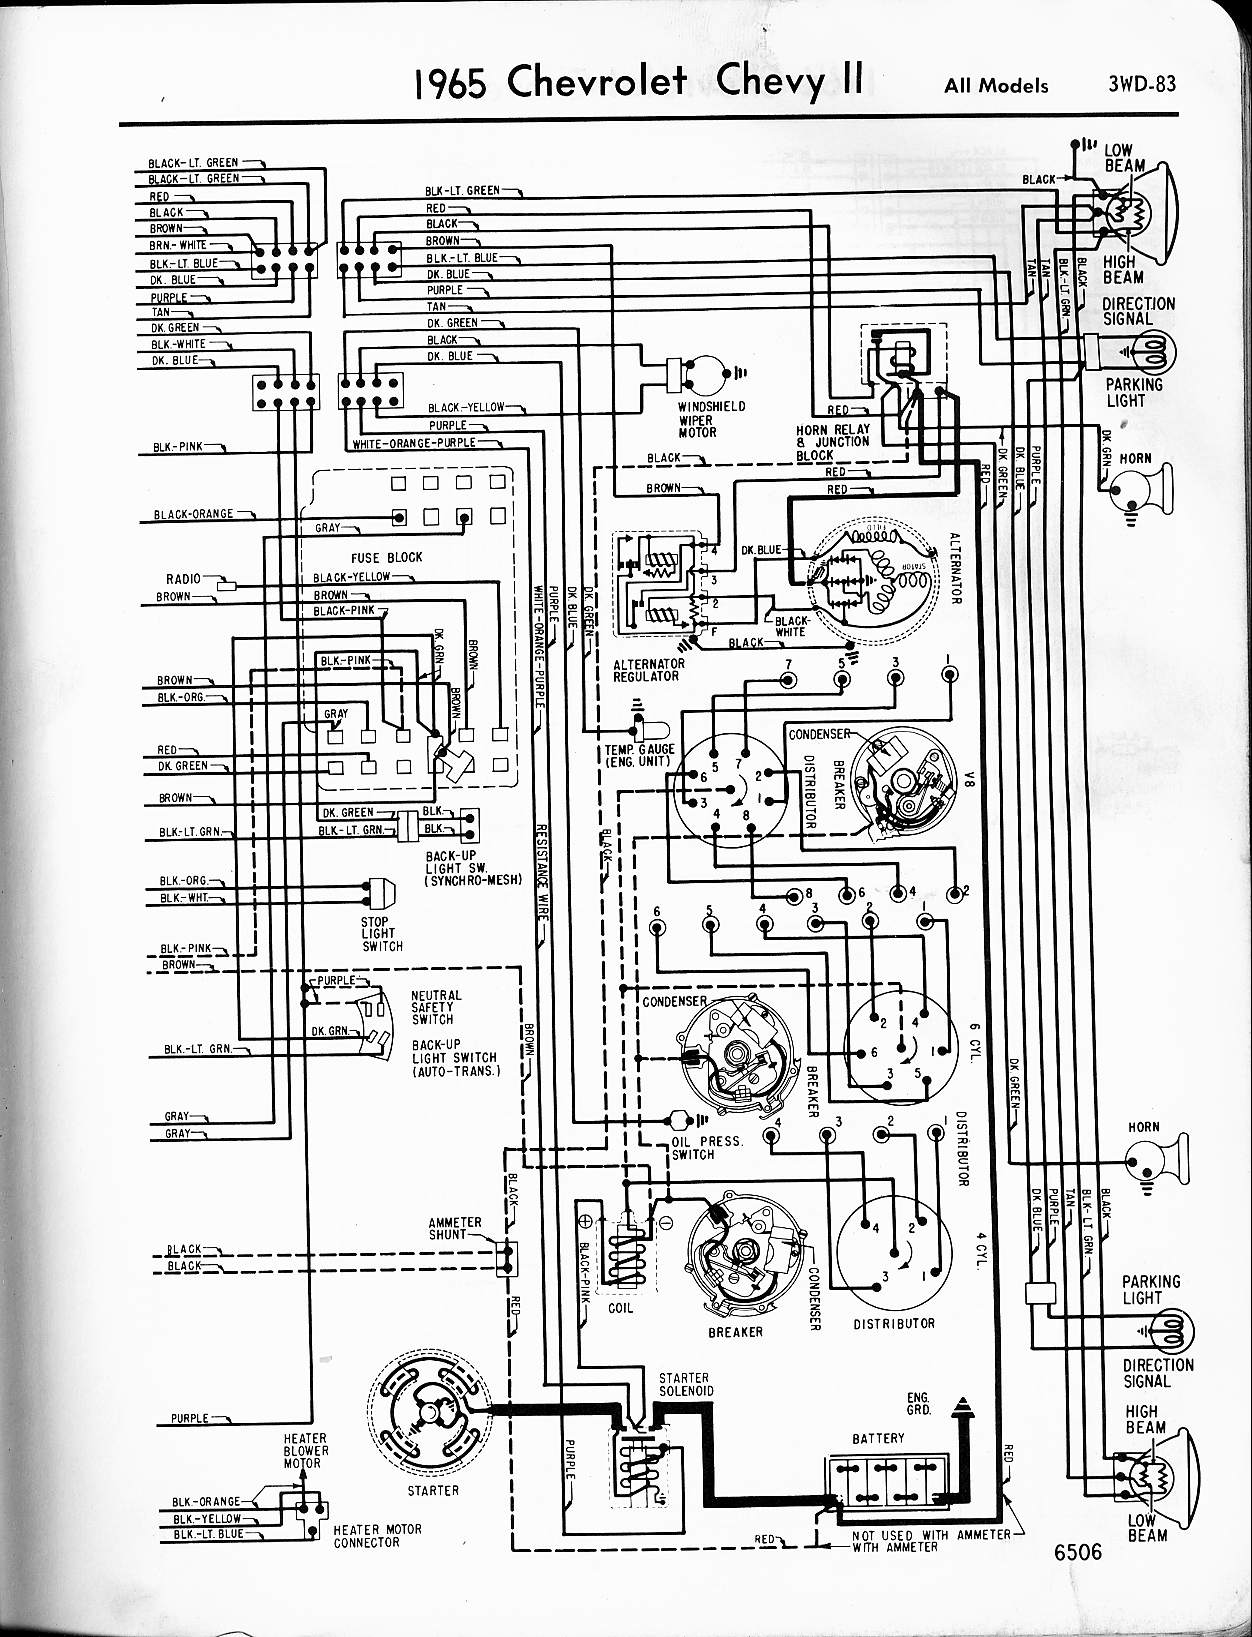 chevelle ignition switch wiring diagram all wiring diagram 1965 chevy chevelle wiring diagram wiring diagram for you u2022 ignition switch troubleshooting chevelle ignition switch wiring diagram